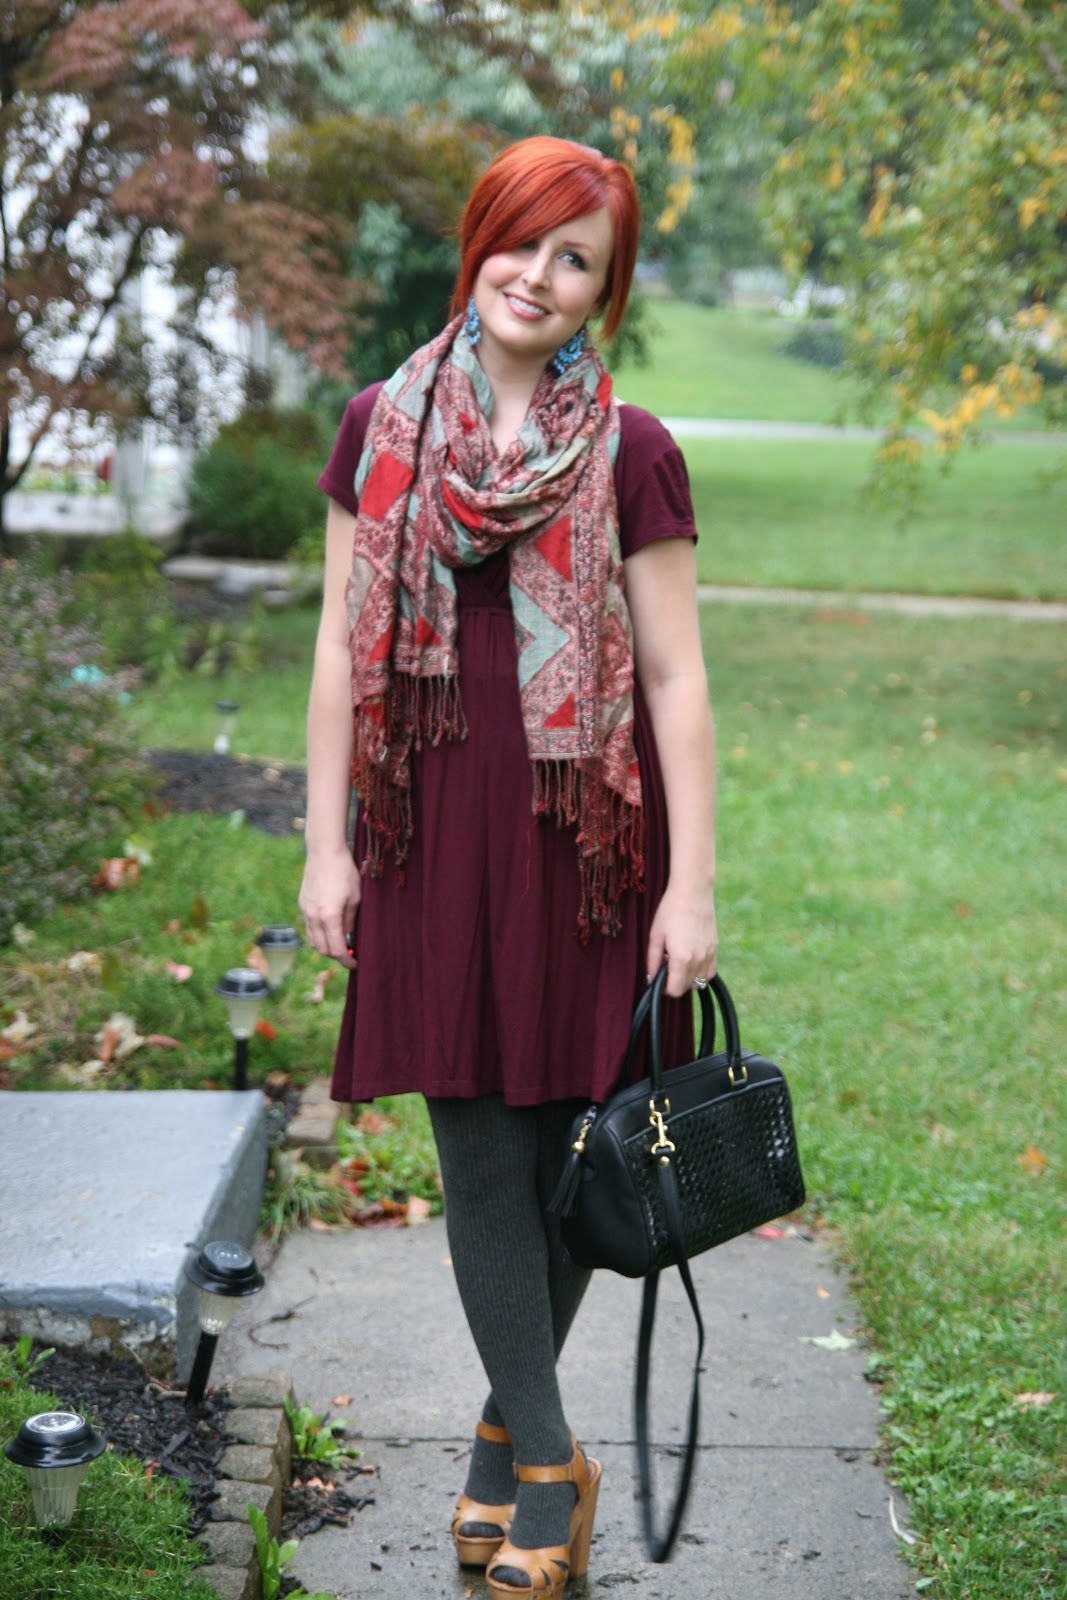 Thrift And Shout: Cute Outfit Of The Day: Burgundy Dress